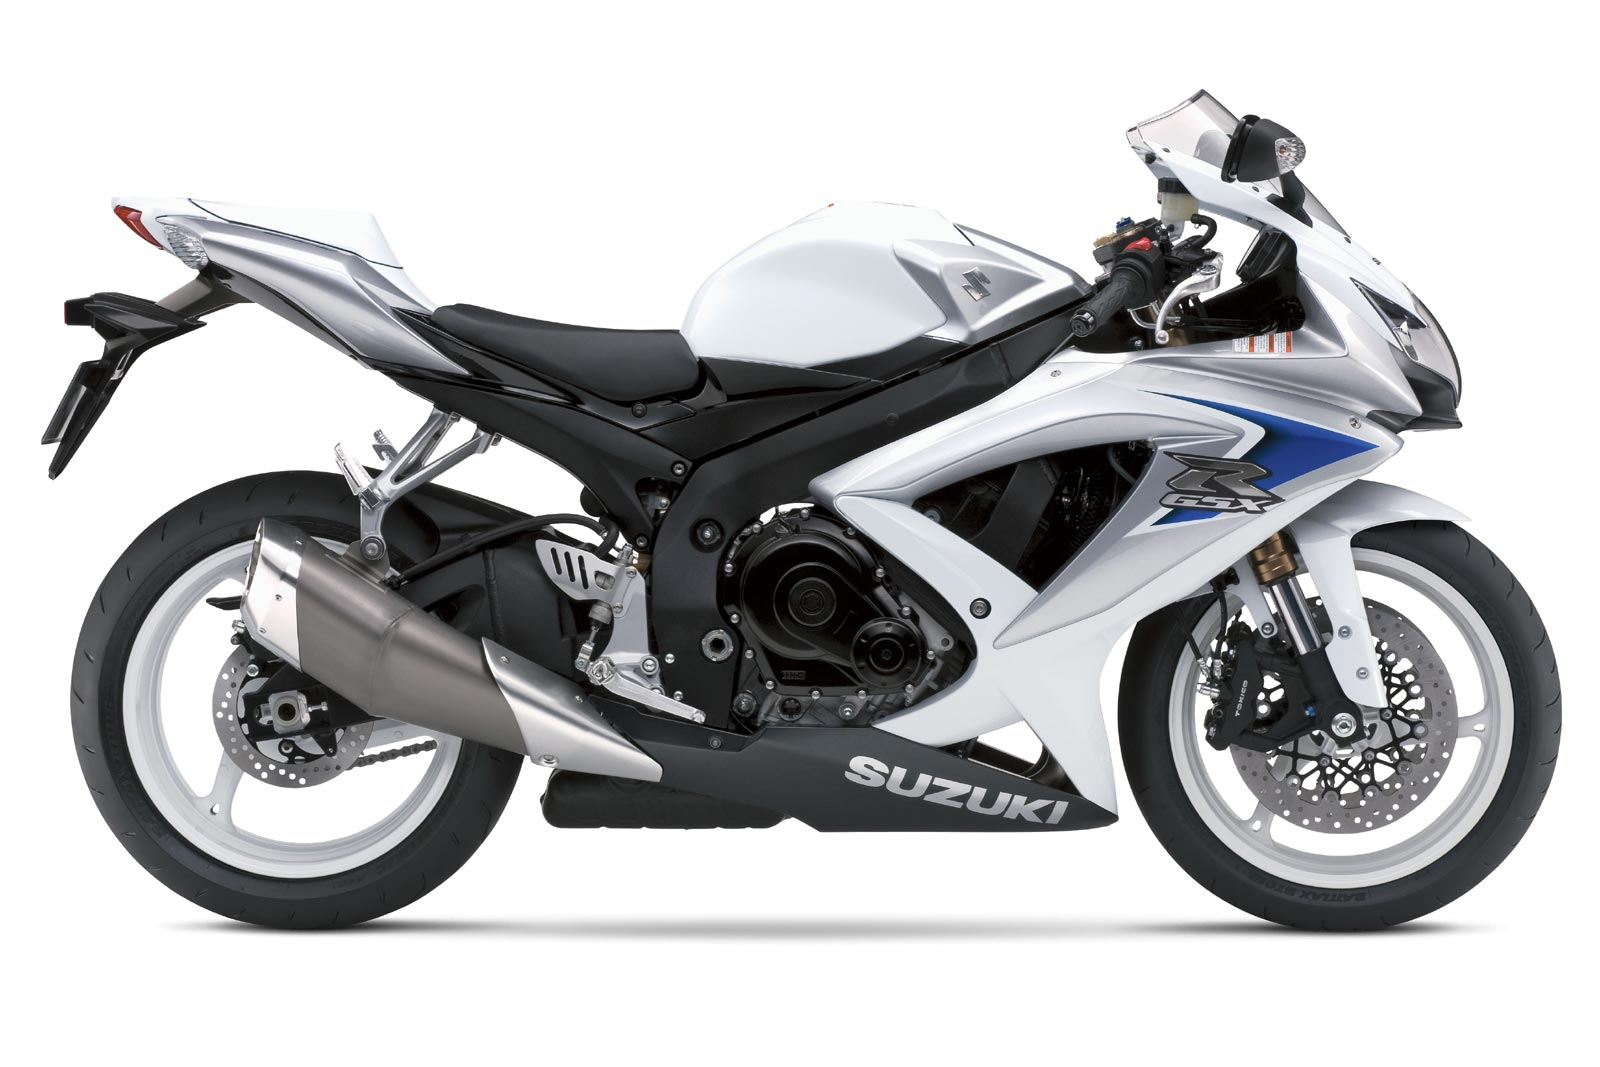 suzuki gsx r600 specs 2007 2008 autoevolution. Black Bedroom Furniture Sets. Home Design Ideas